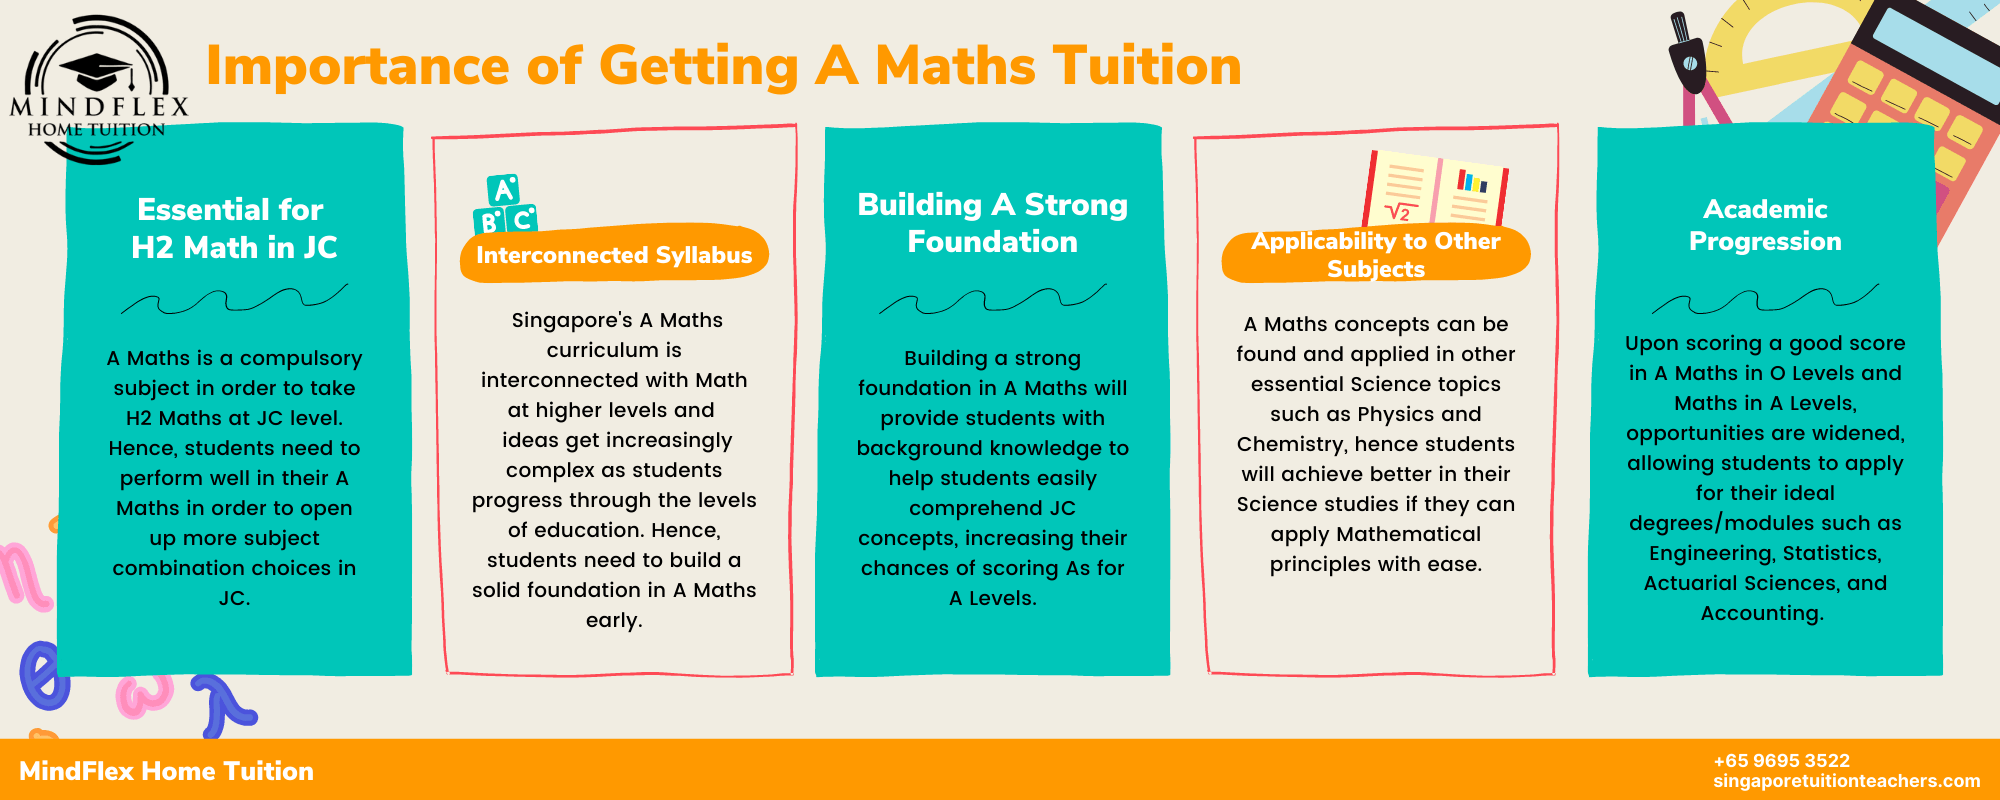 Infographic on Importance of A Maths Tuition